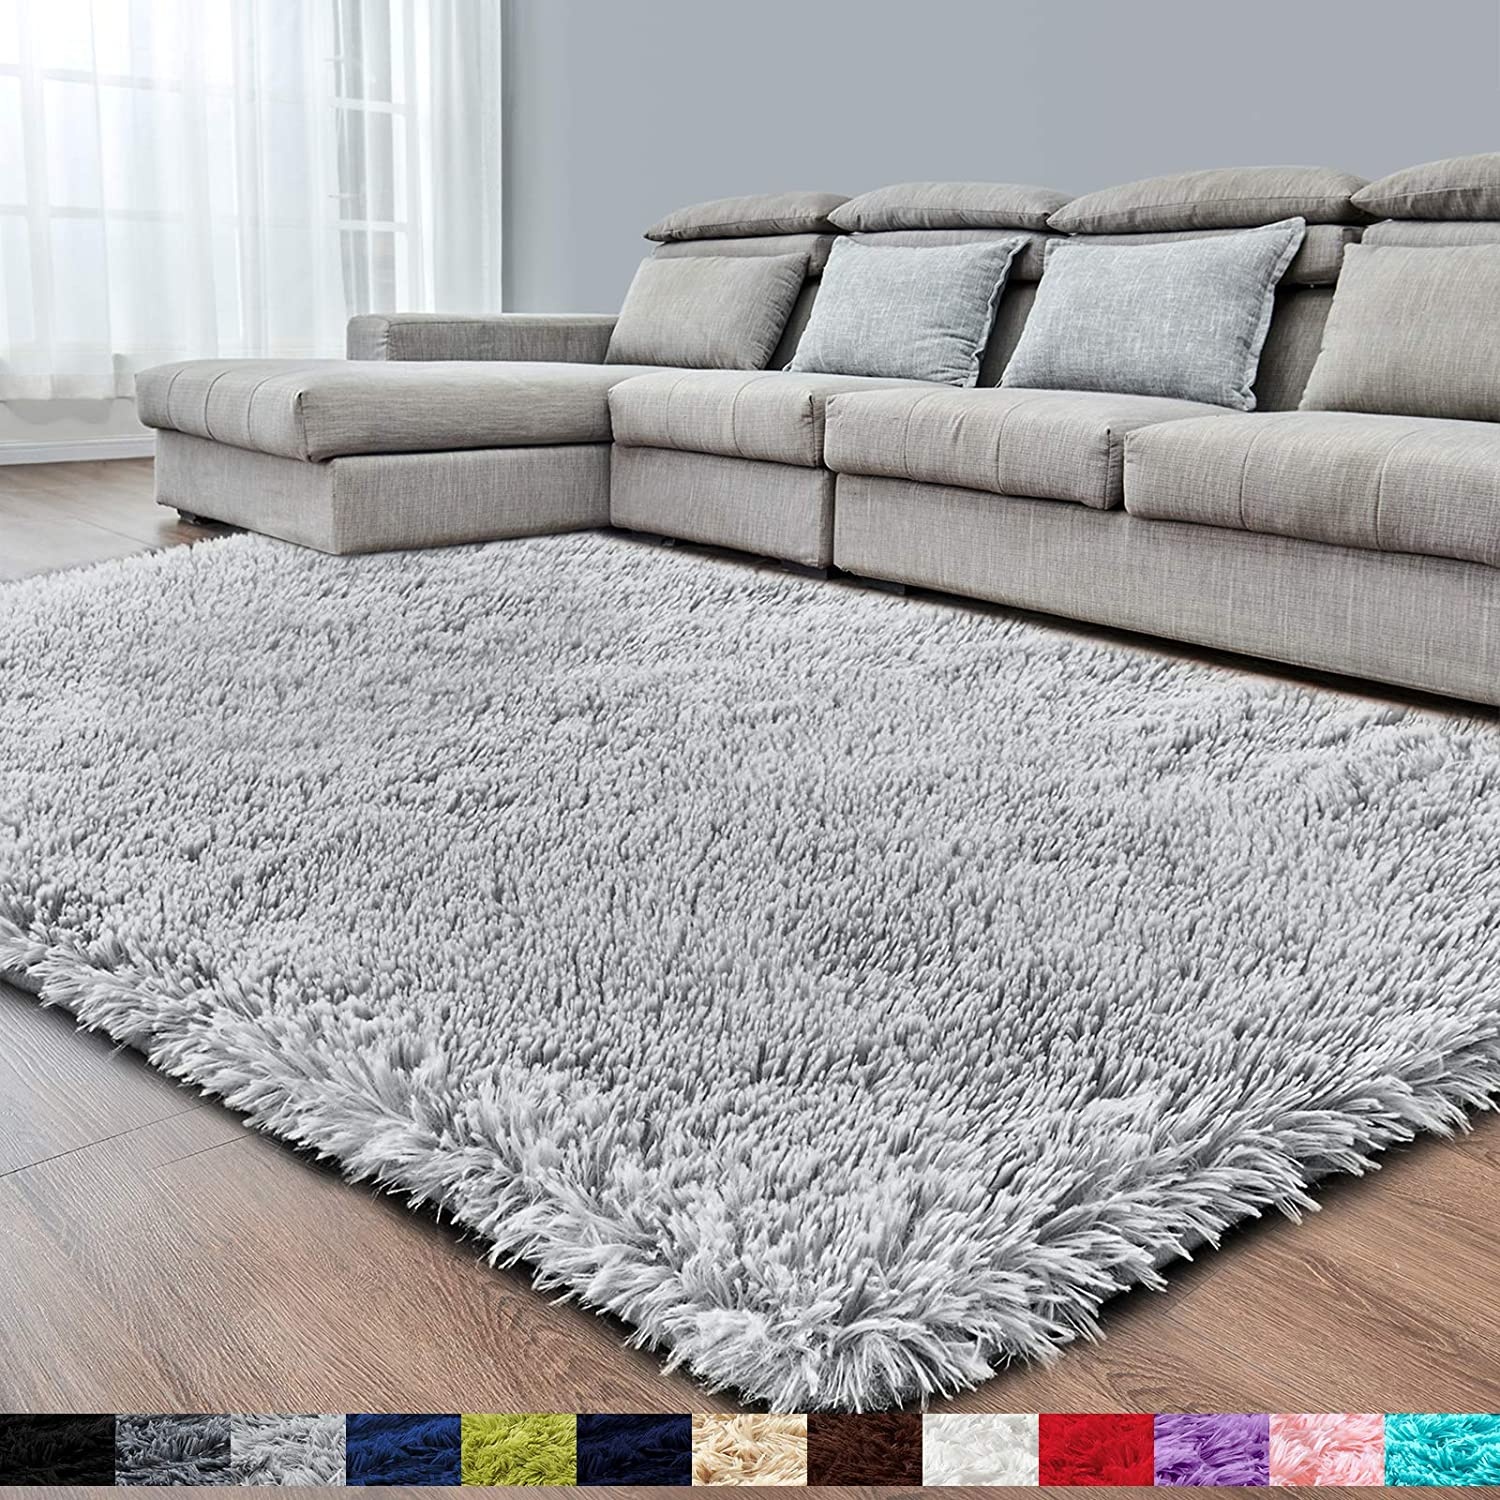 Light Grey Soft Area Rug For, Soft Area Rugs For Living Room